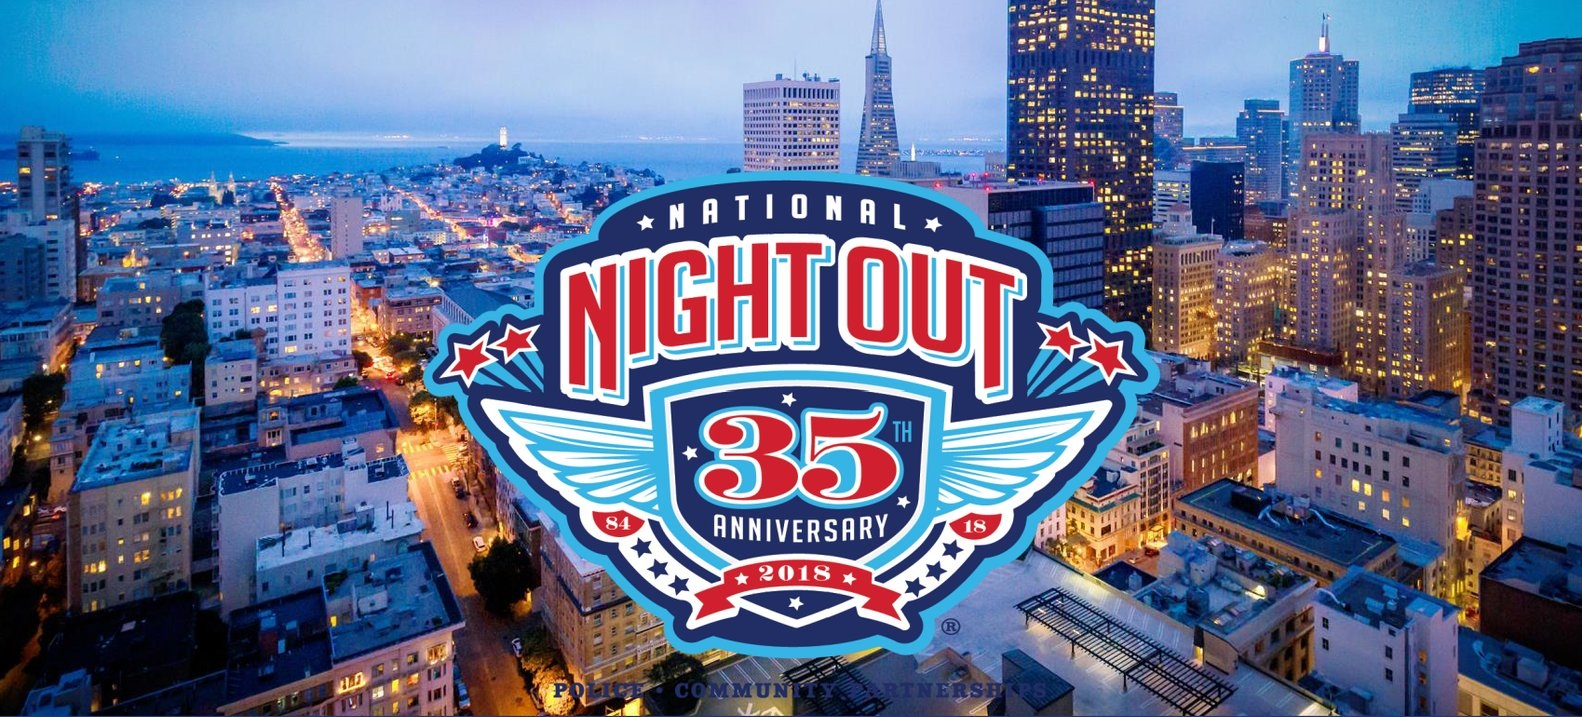 2019 National Night Out for NERTs | Bayview